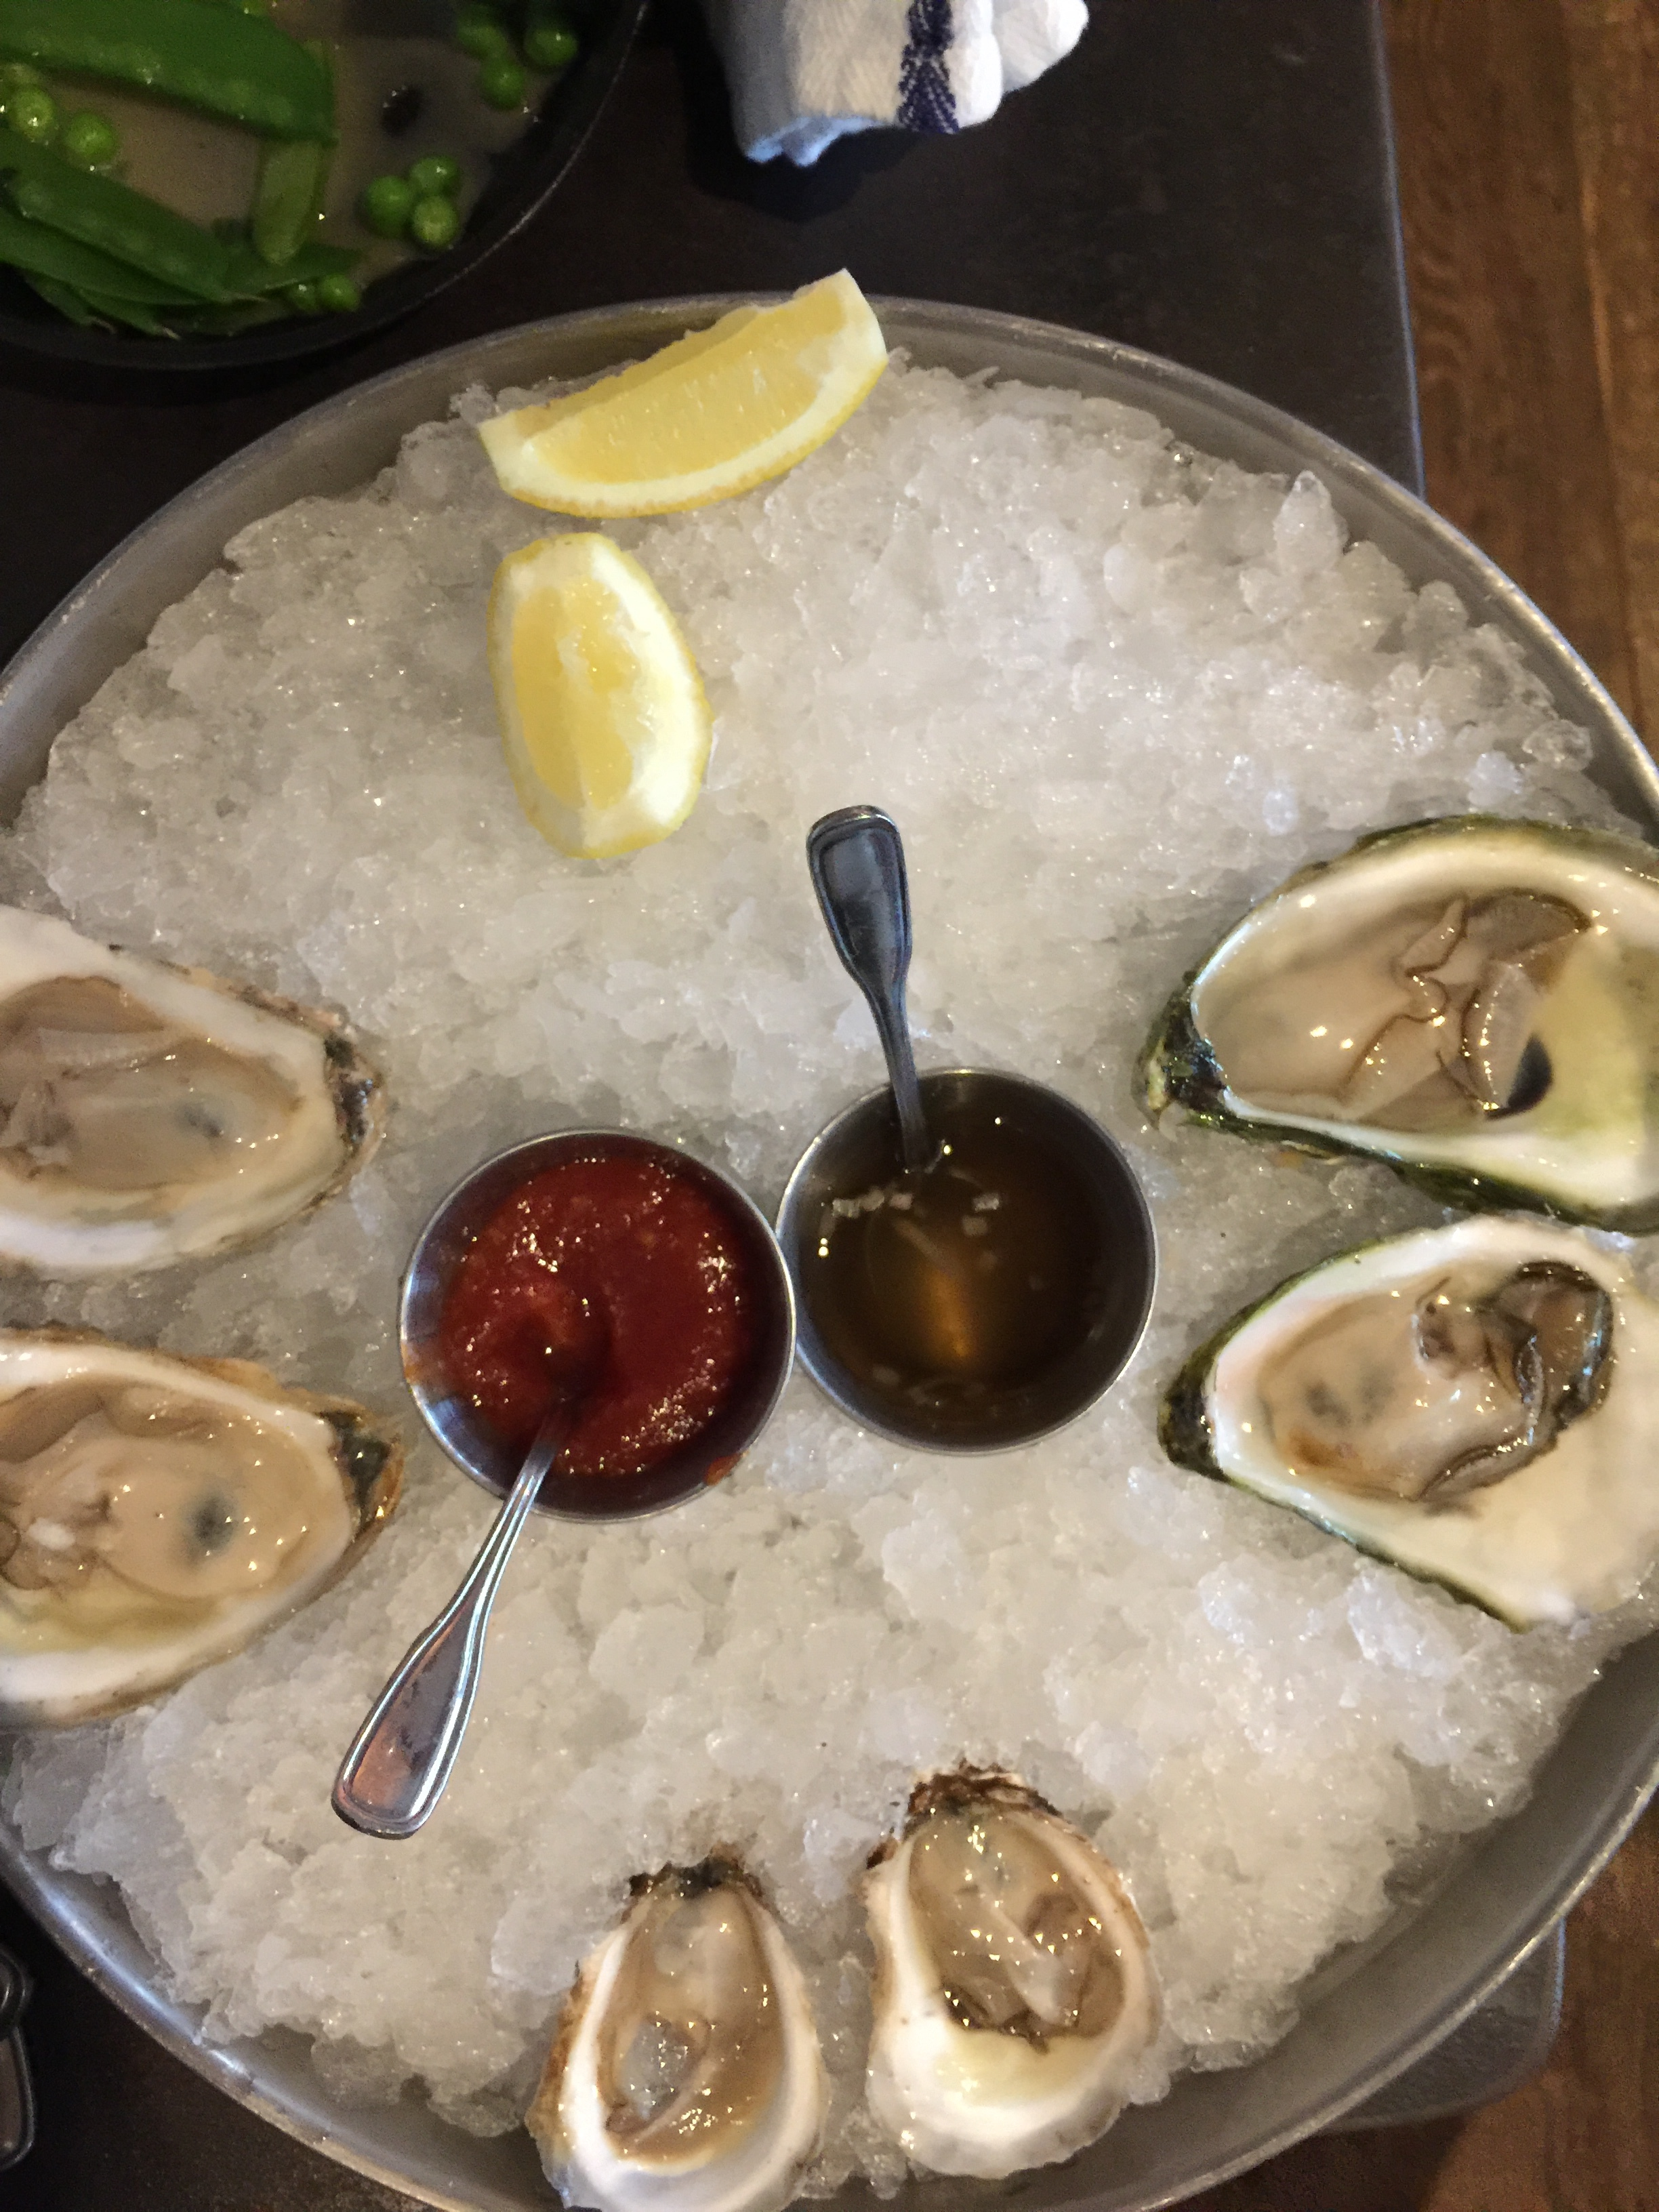 Oysters from Scales. A week's vacation in Portland, Maine.